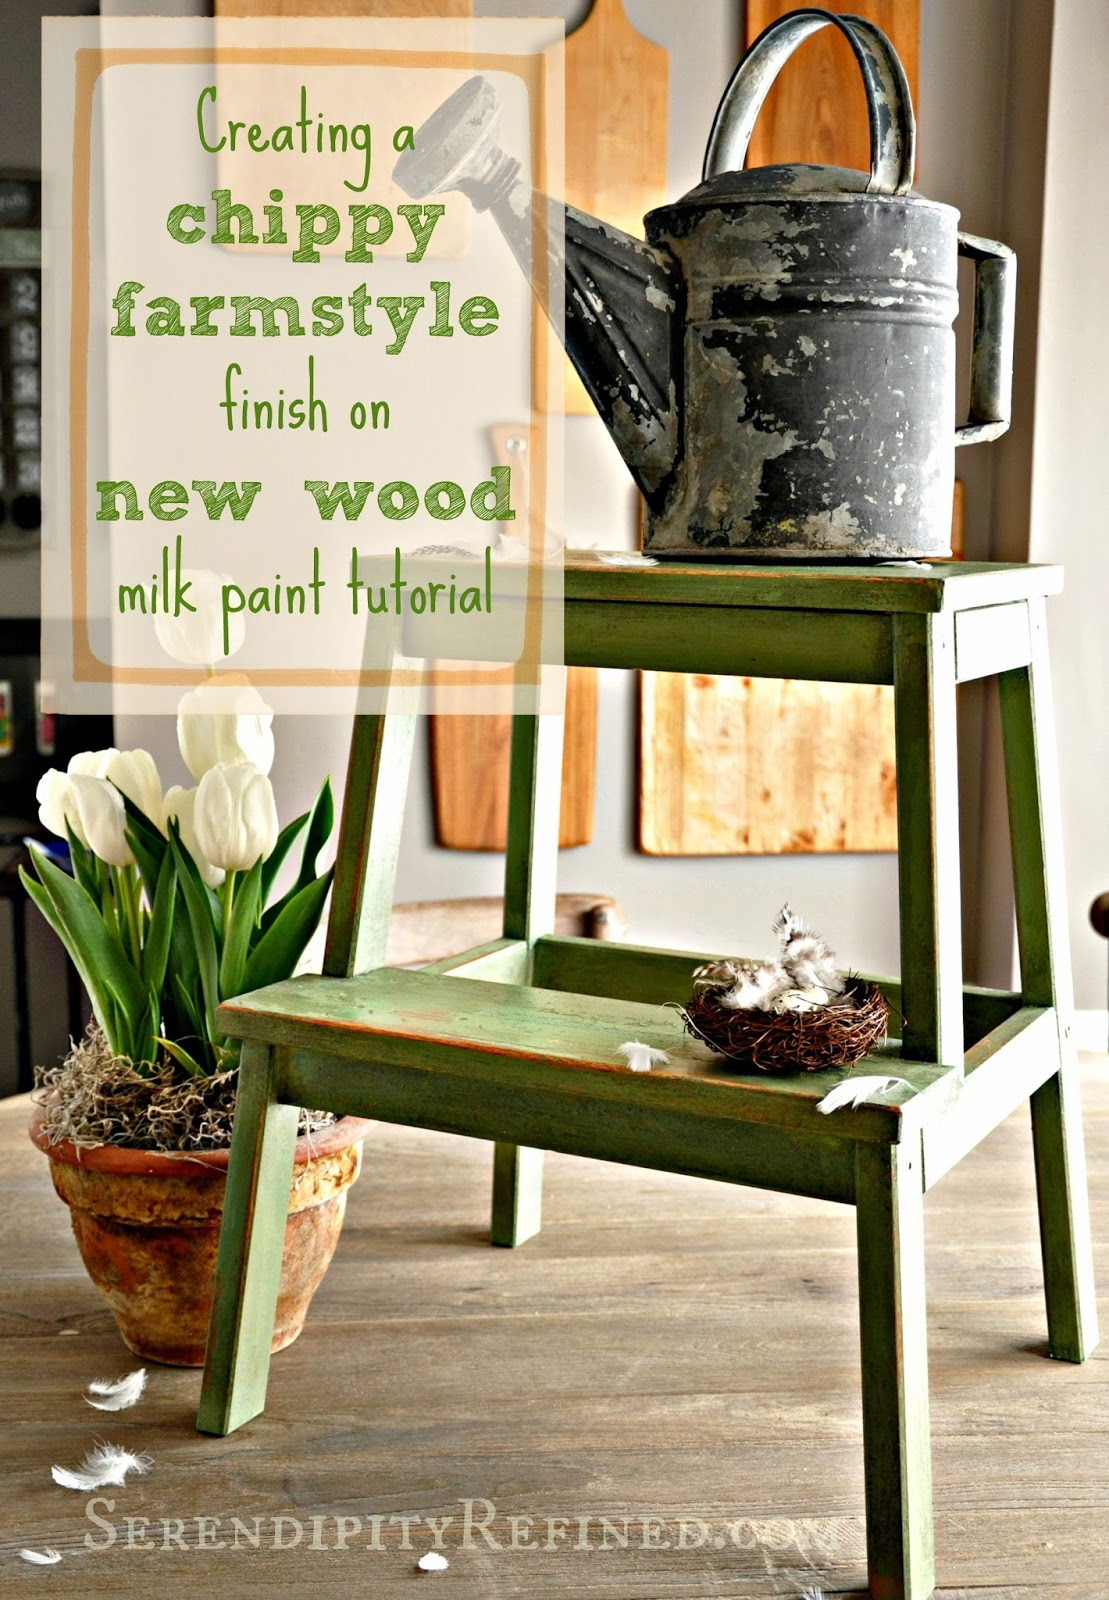 Creating A Chippy Farmstyle Finish On New Wood {Milk Paint Tutorial}